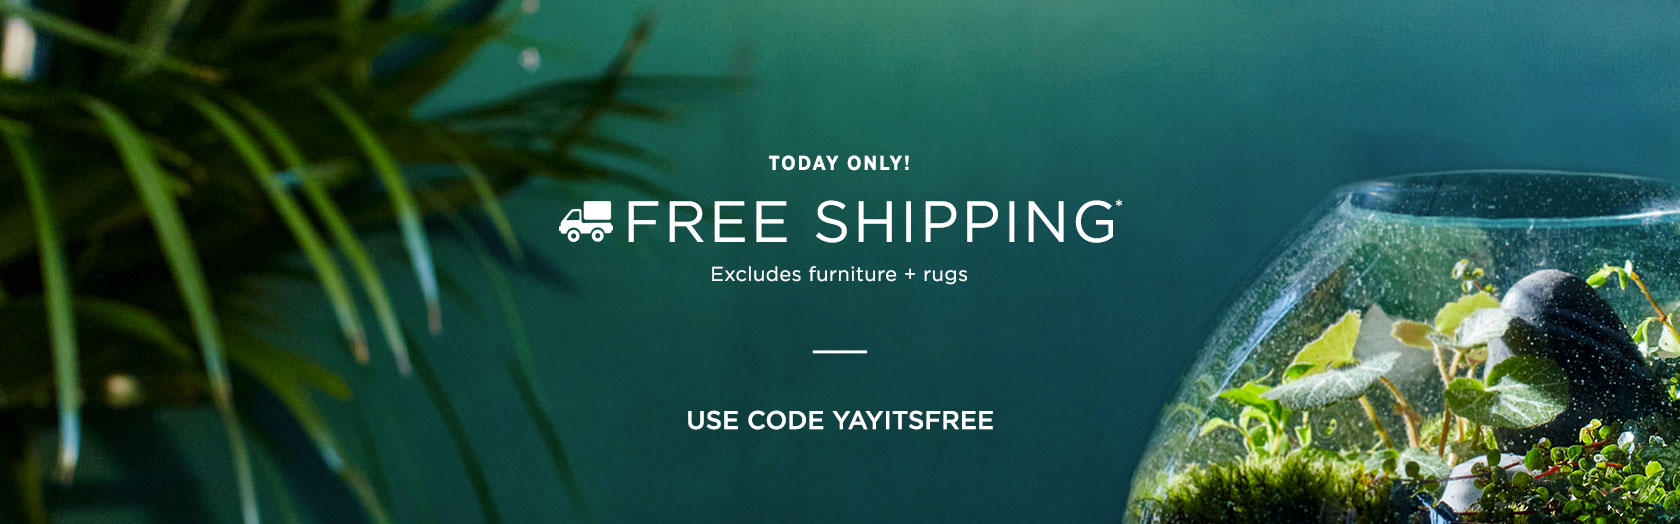 Today Only! Free Shipping - Use Code YAYITSFREE